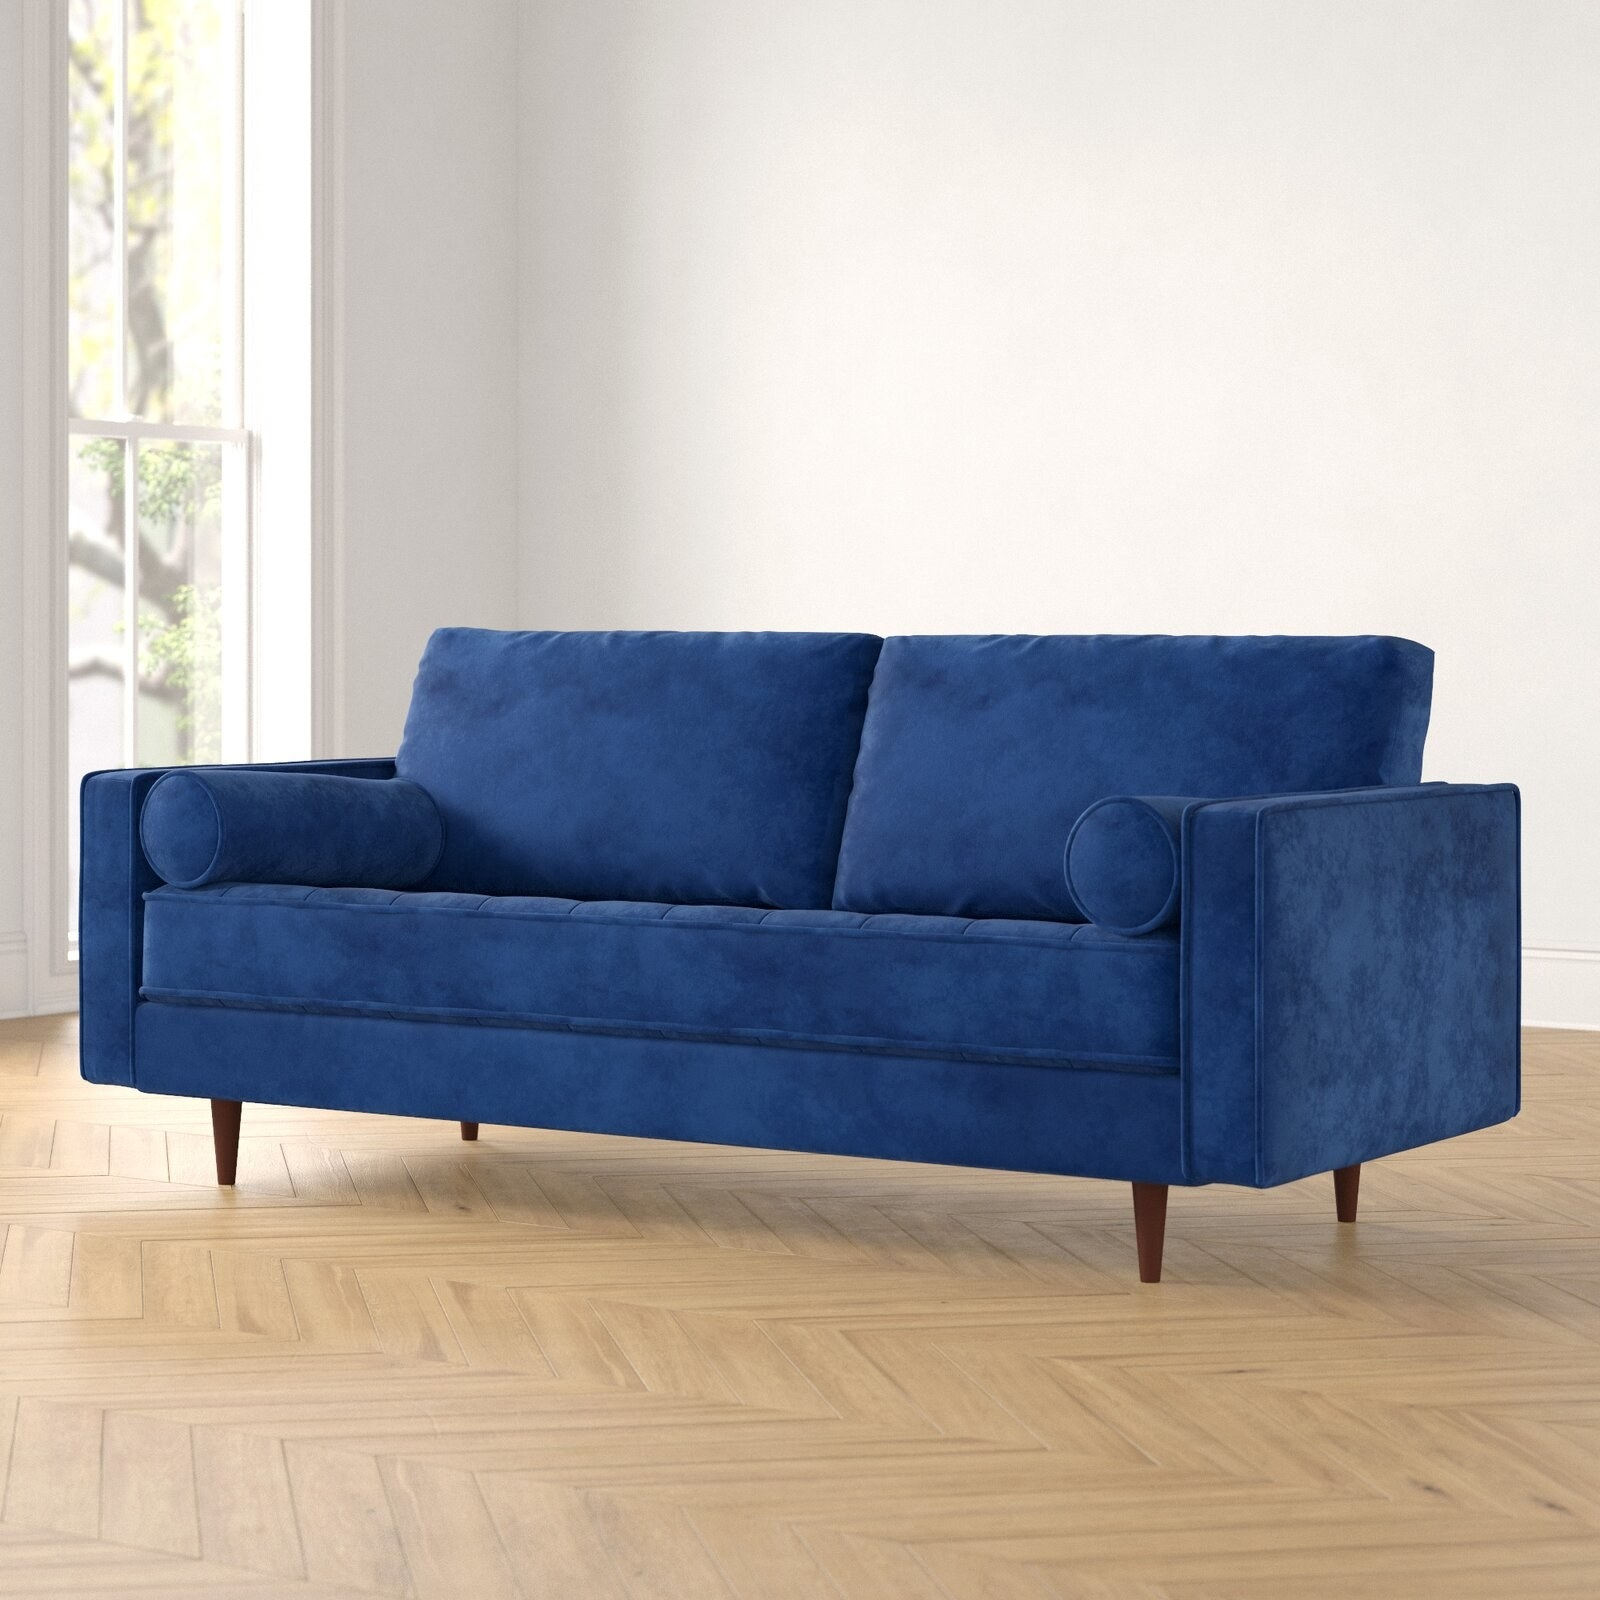 The blue velvet square sofa with matching pillows